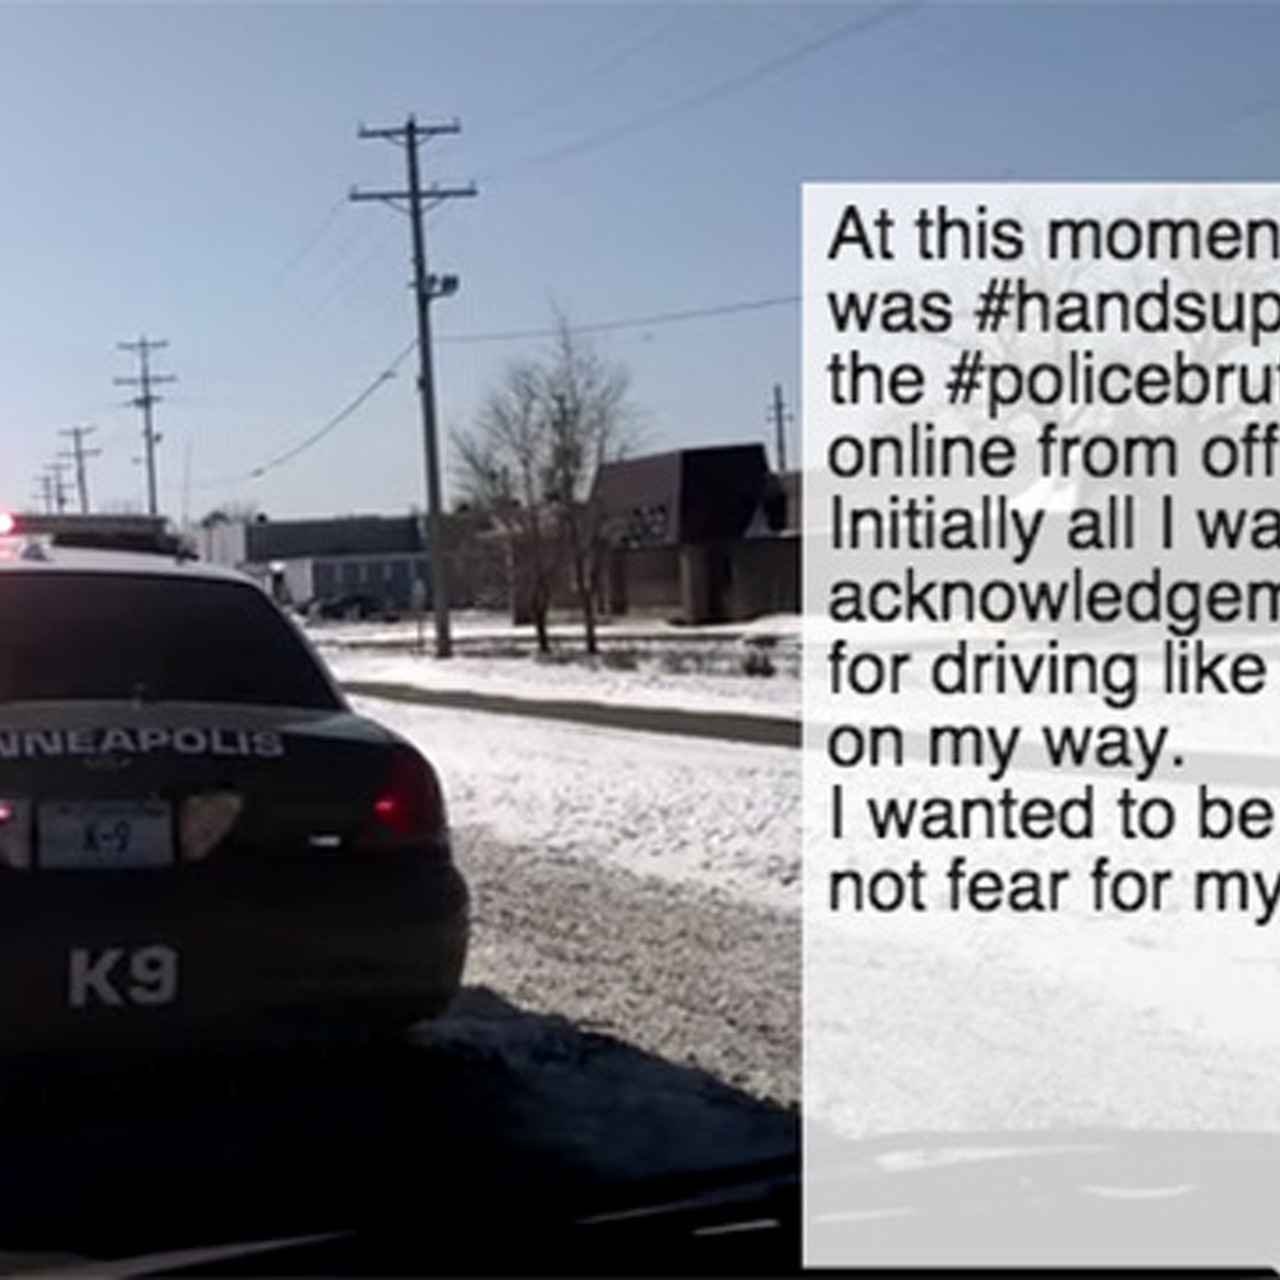 Watch What Happens When Someone Pulls Over a Cop for Speeding